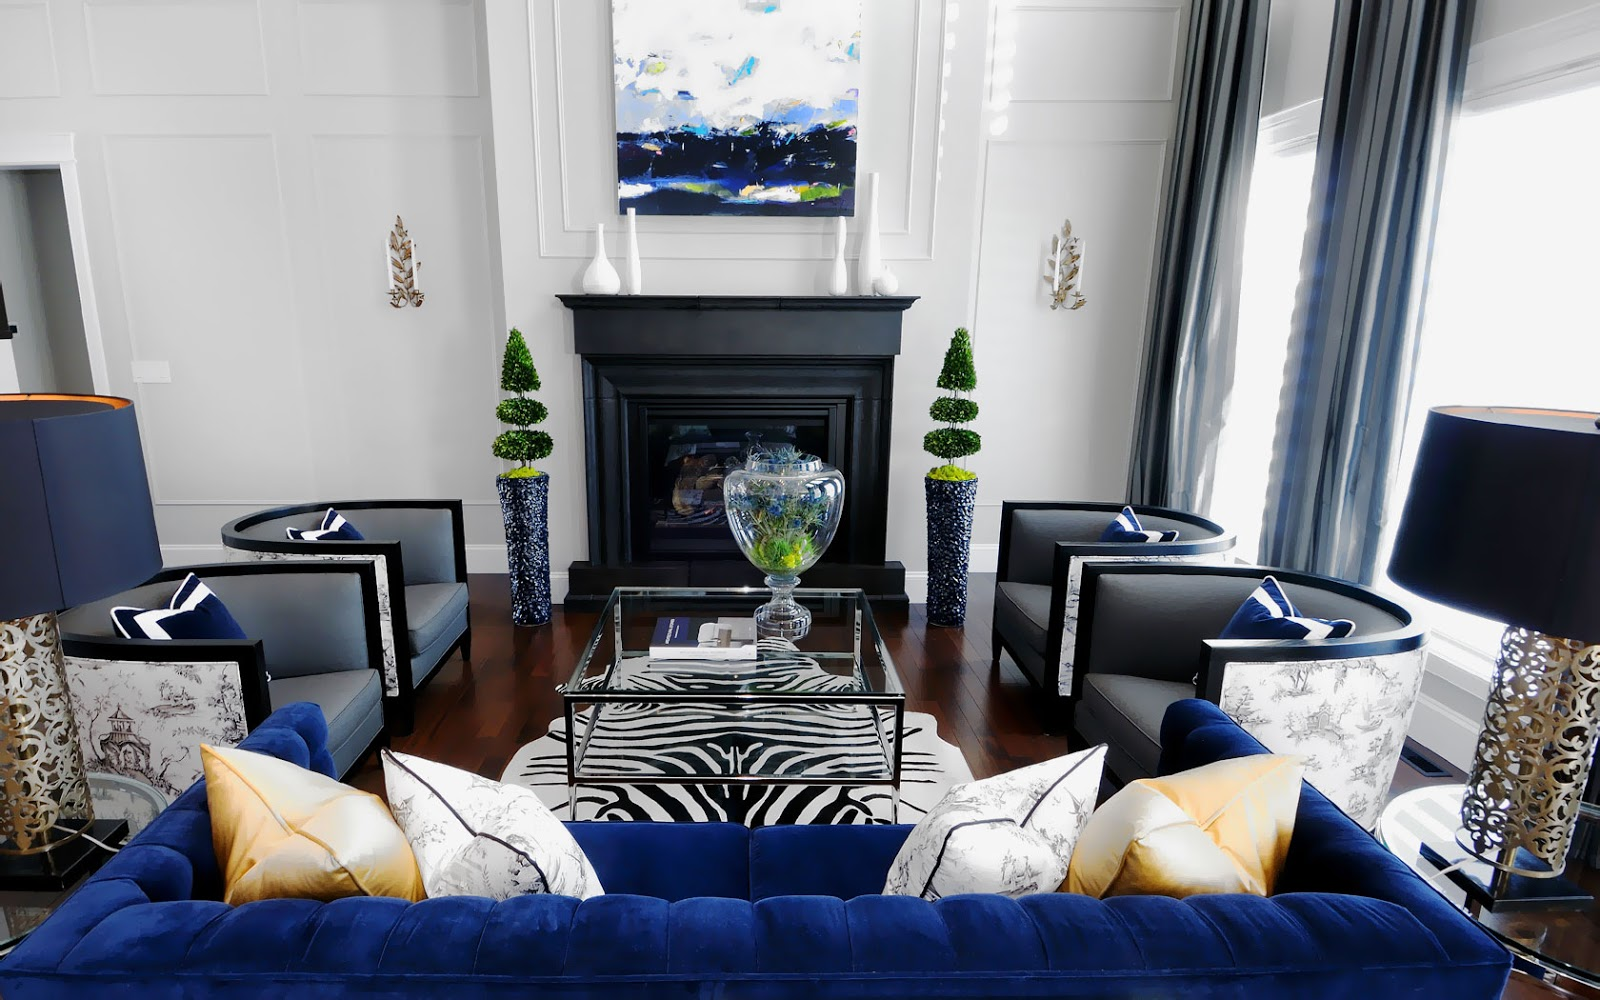 Upholster Your Favorite Sofa In A Royal Blue Velvet